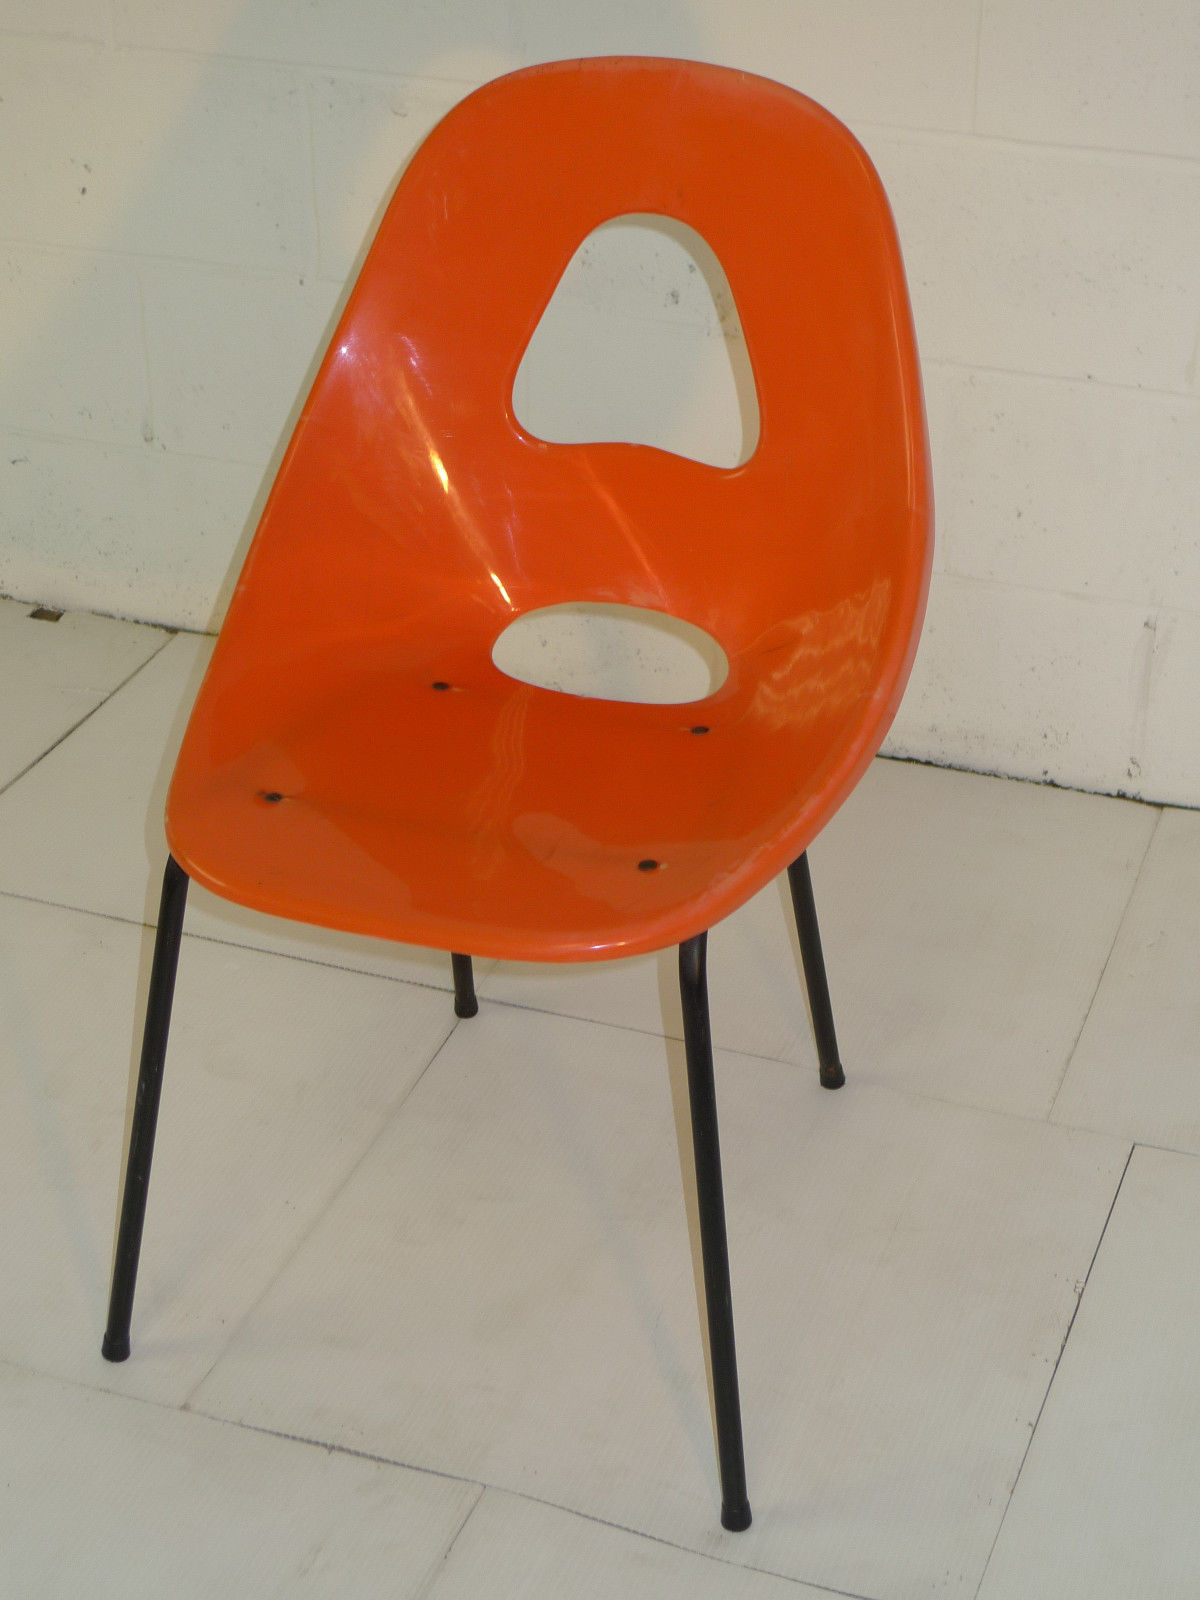 le corbusier chair sonoma outdoor anti gravity orange plastic space age mid century modern eames era chairs ...